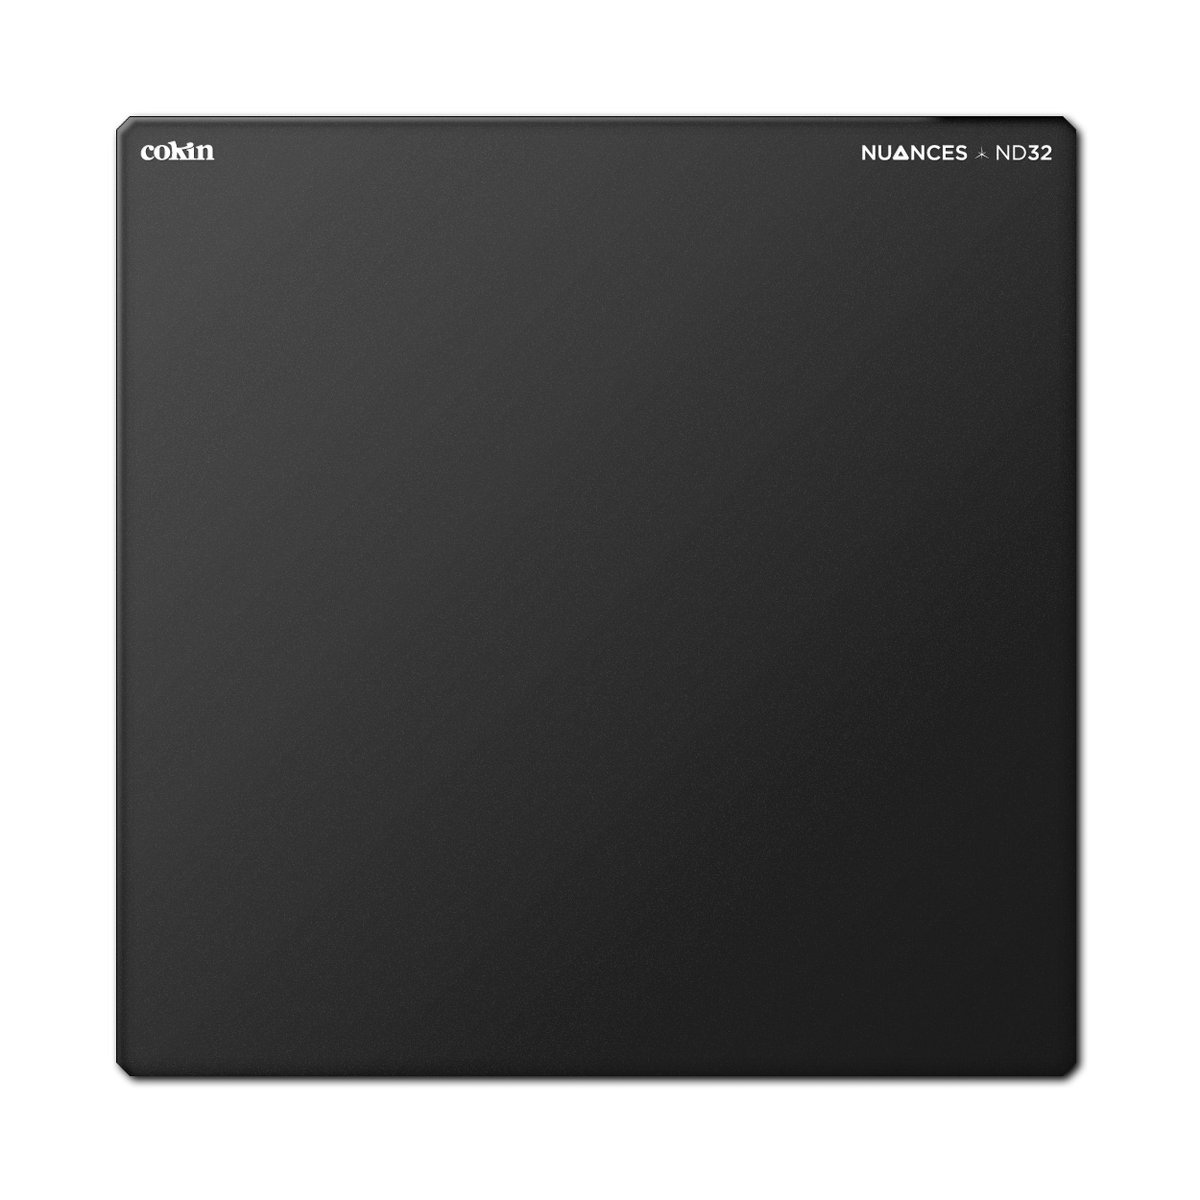 Cokin Nuances ND32 - 5-Stop Neutral Density Filter